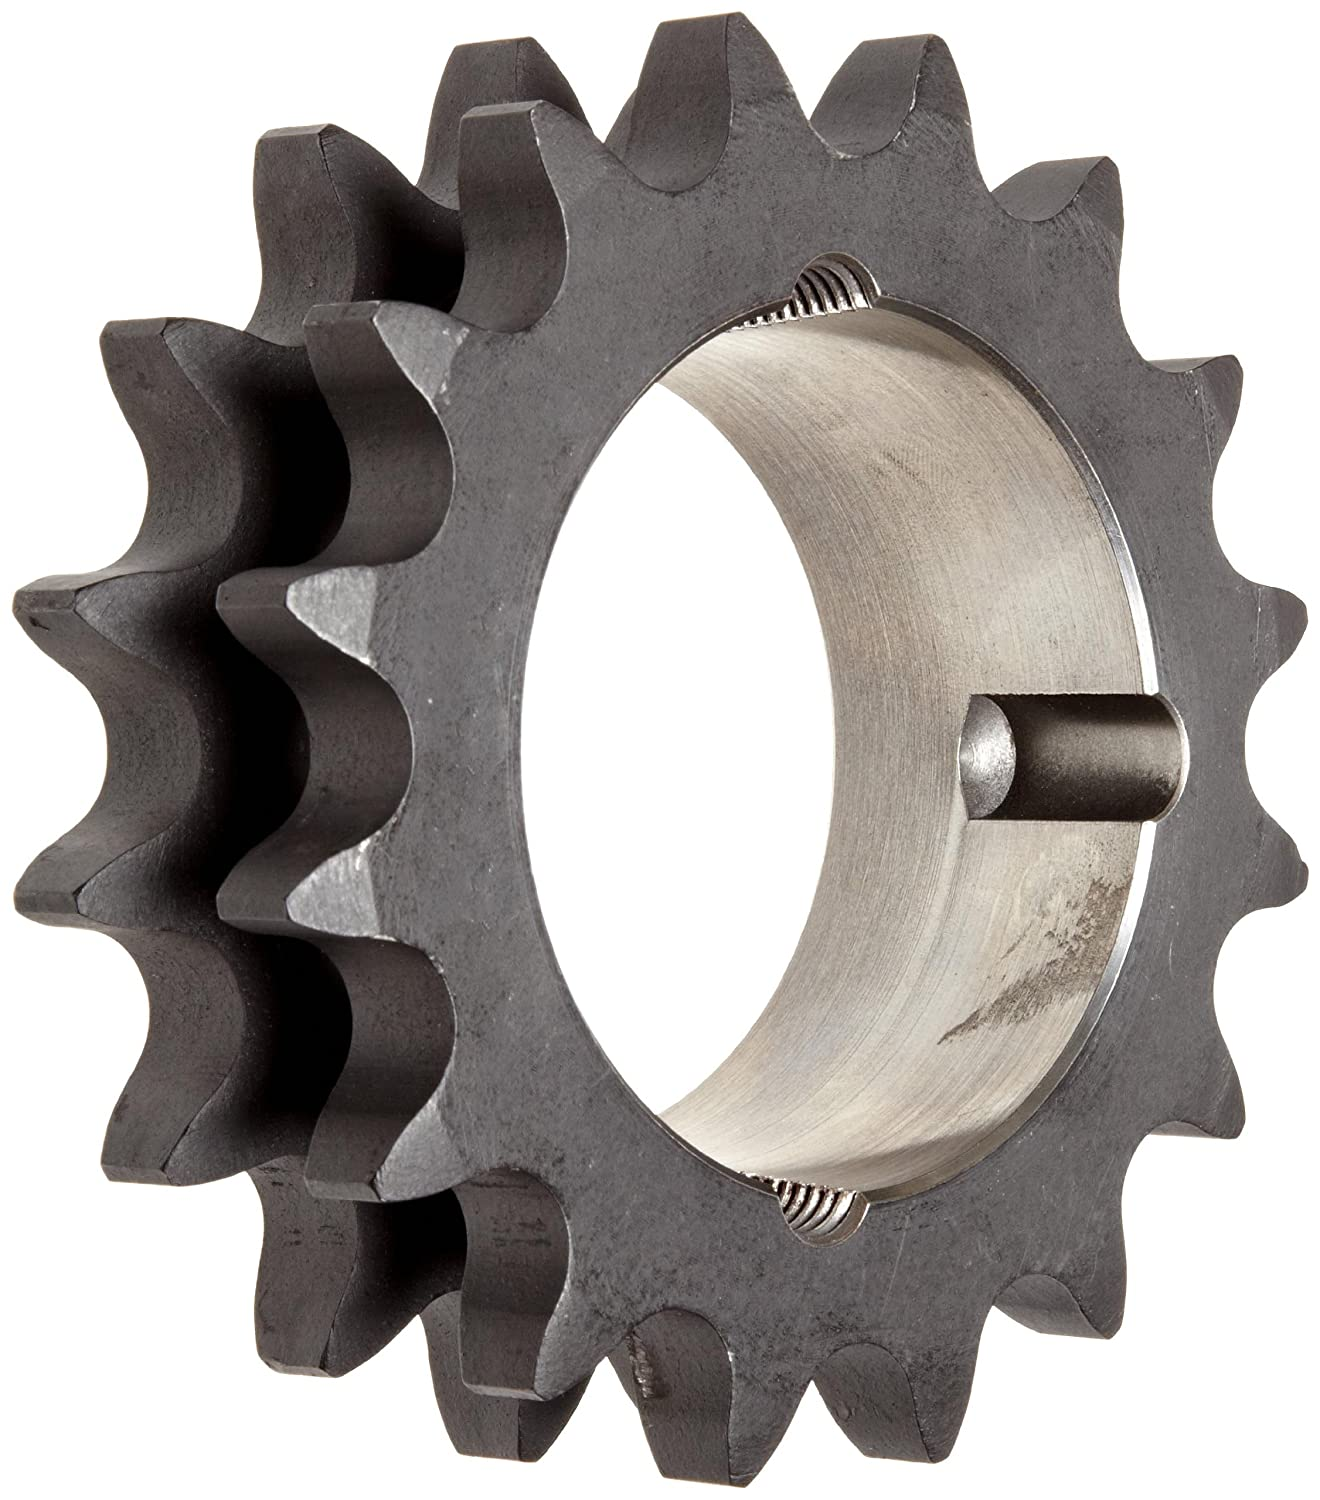 Taper Bushed Type A Hub For 1615 Bushing Martin Roller Chain Sprocket Double Strand 1.71 Width 13 Teeth 1 Pitch Hardened Teeth 4.657 OD 1.625 Max Bore Dia. 80 Chain Size